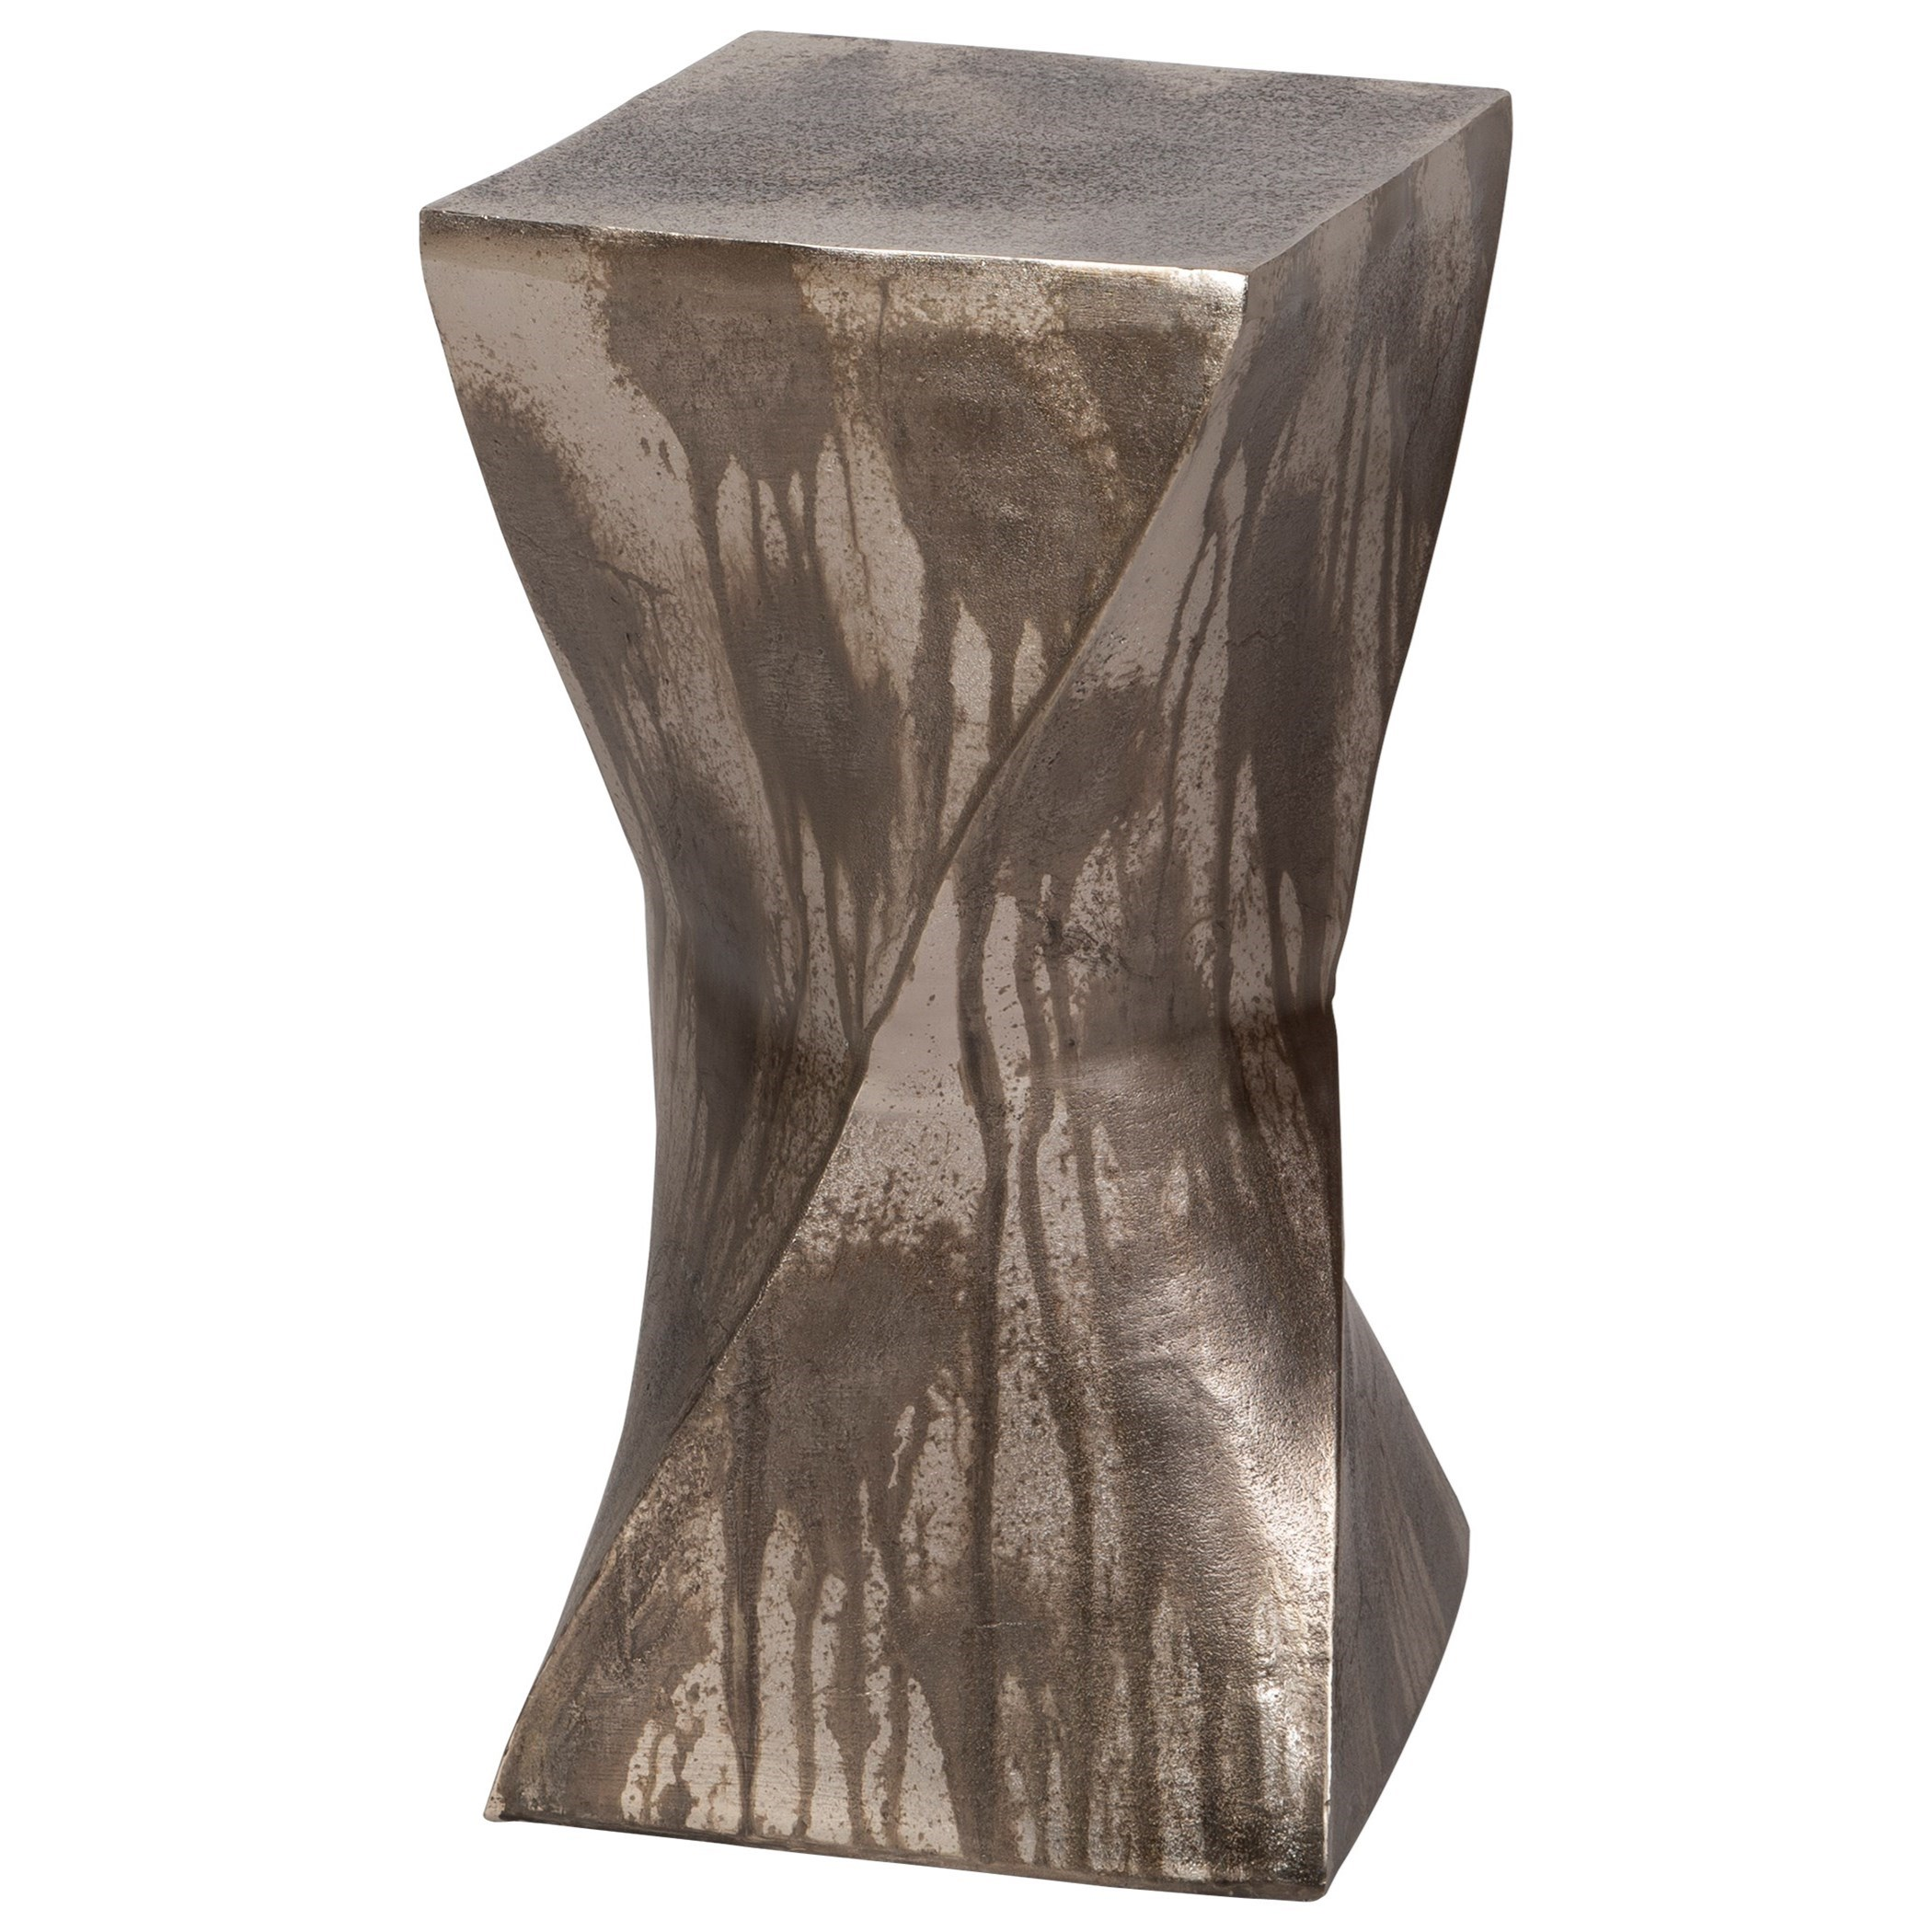 Accent Furniture - Occasional Tables Euphrates Accent Table by Uttermost at Goffena Furniture & Mattress Center